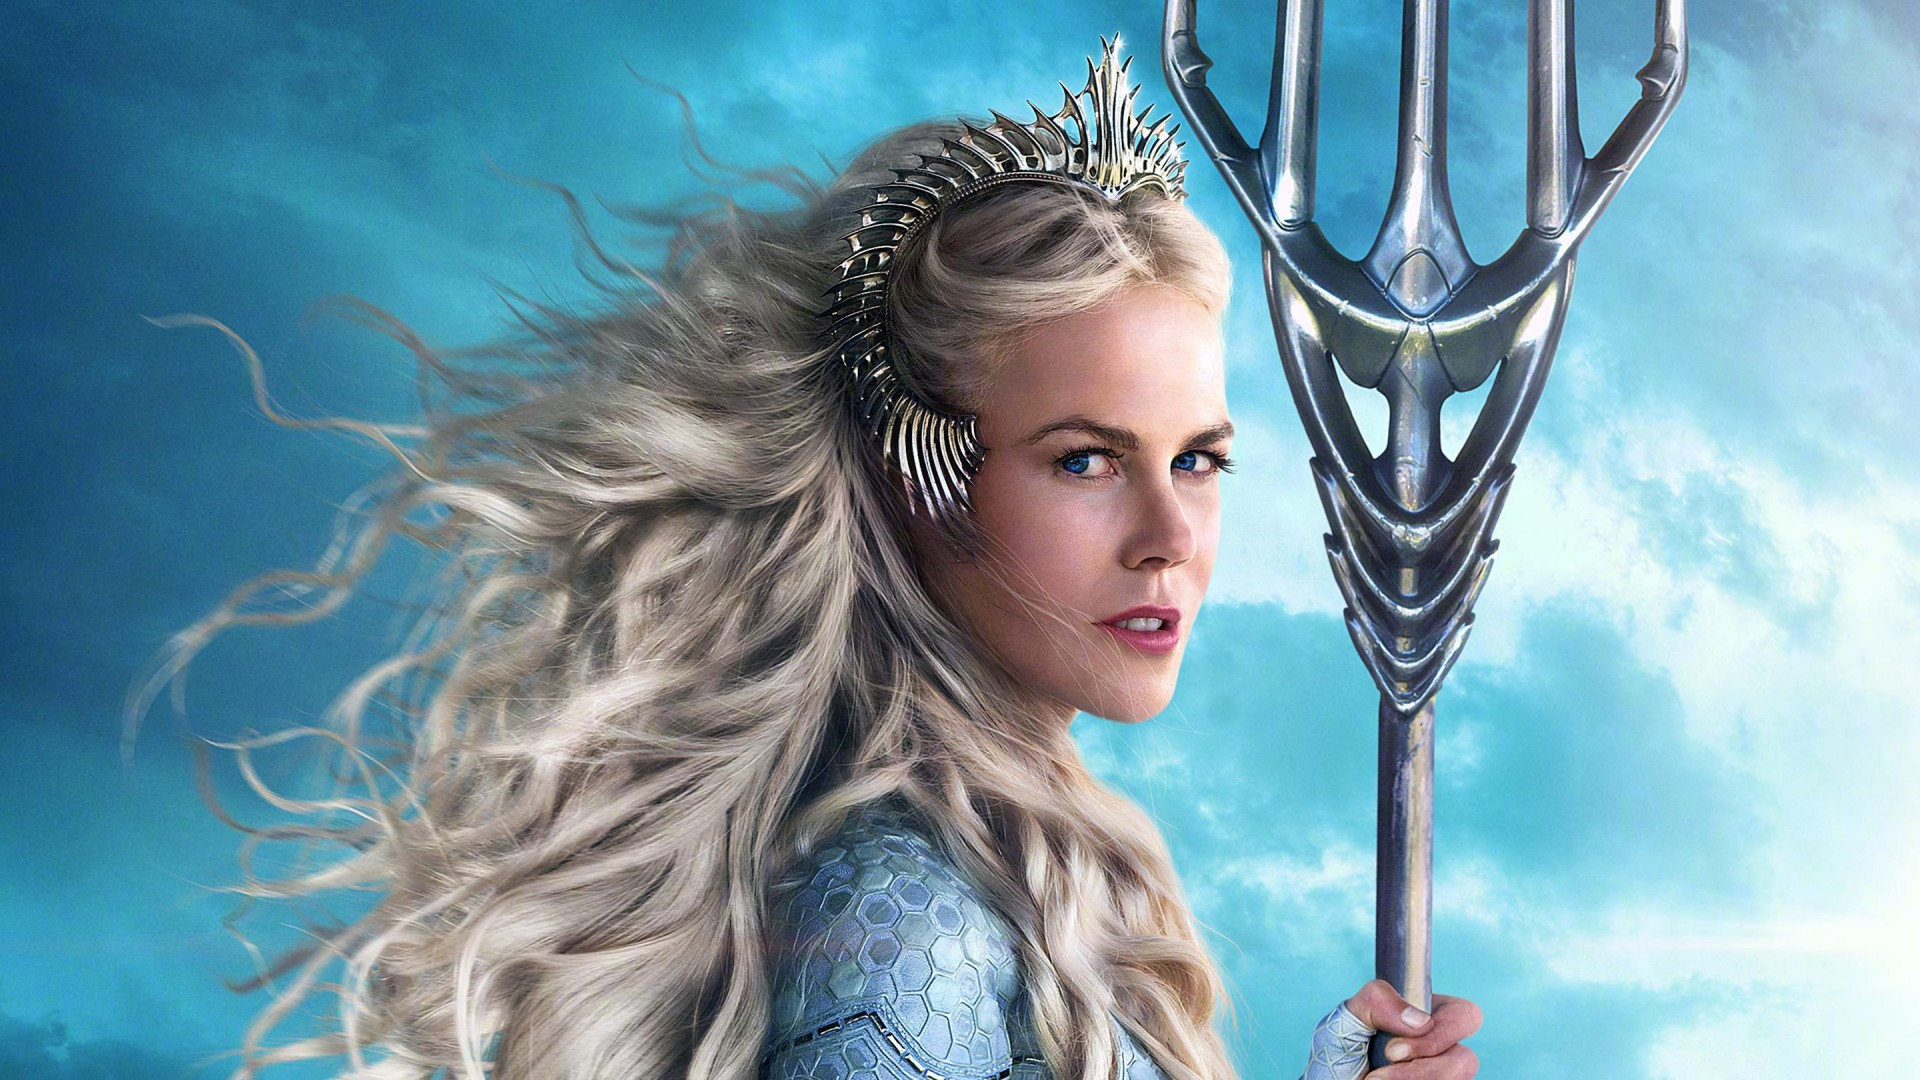 Cute Wallpapers For Iphone 7 Plus Nicole Kidman As Queen Atlanna In Aquaman Wallpapers Hd